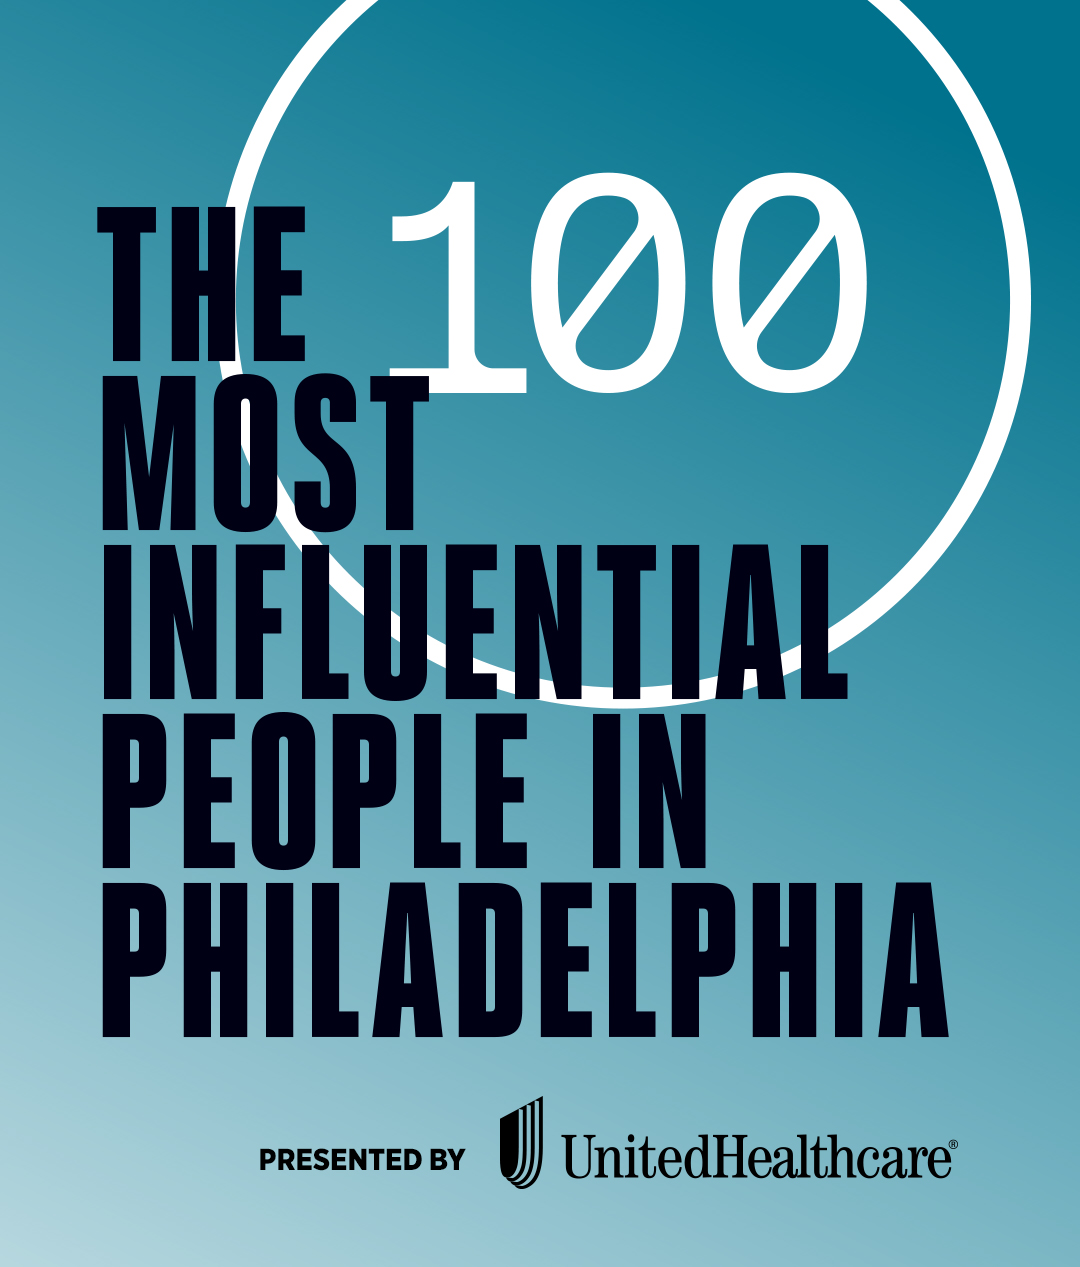 The 100 Most Influential People in Philadelphia